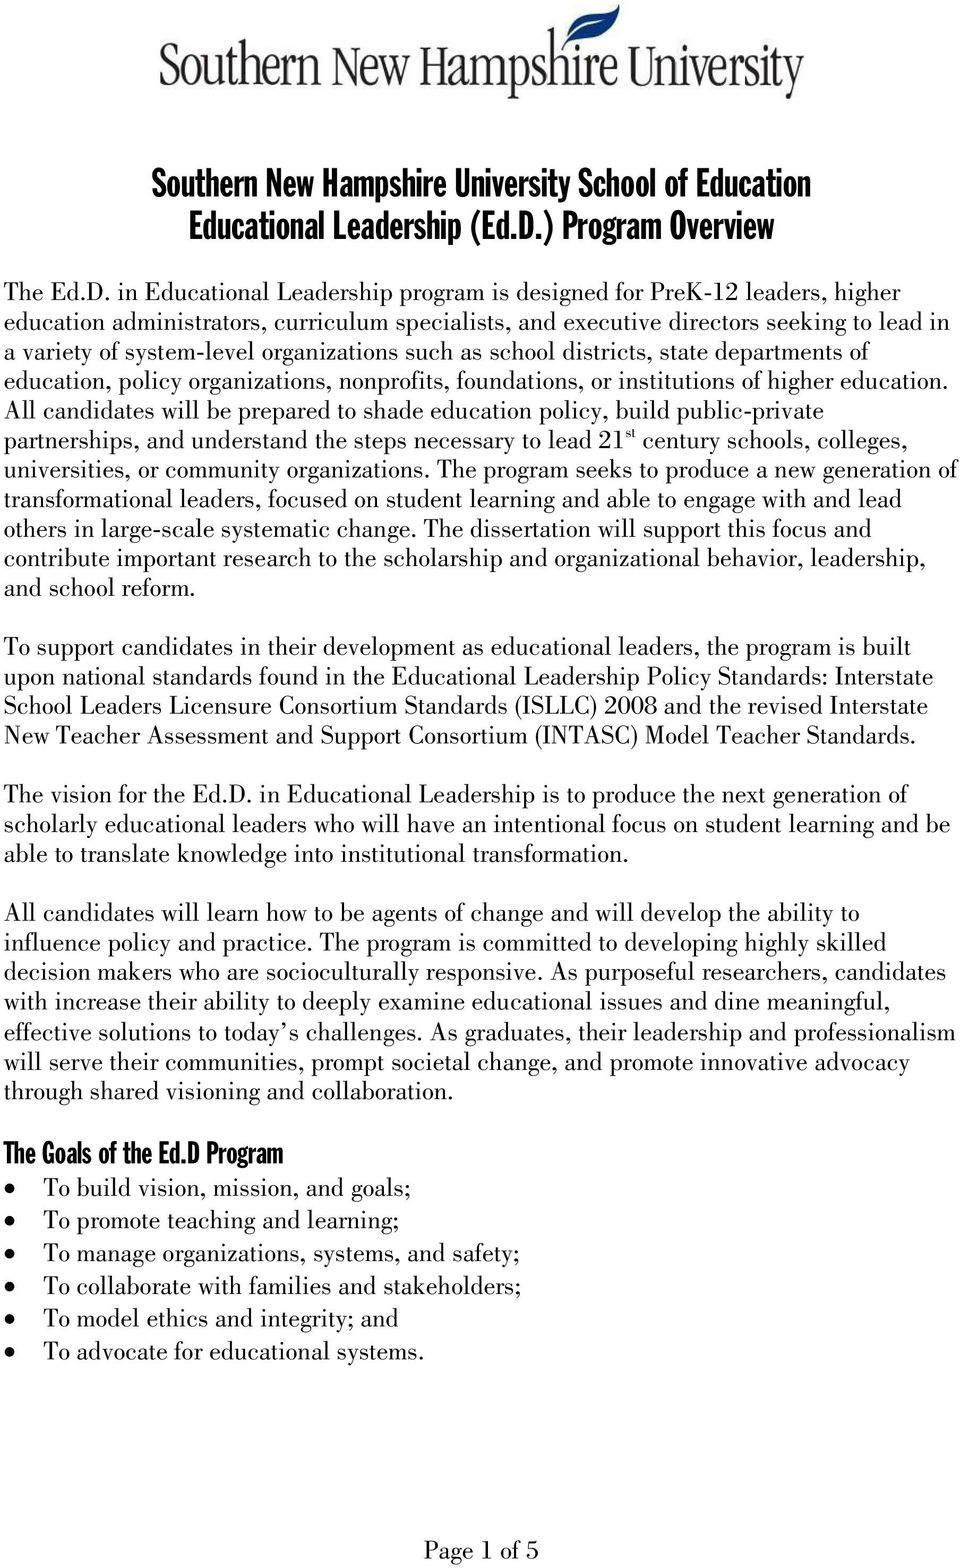 in Educational Leadership program is designed for PreK-12 leaders, higher education administrators, curriculum specialists, and executive directors seeking to lead in a variety of system-level